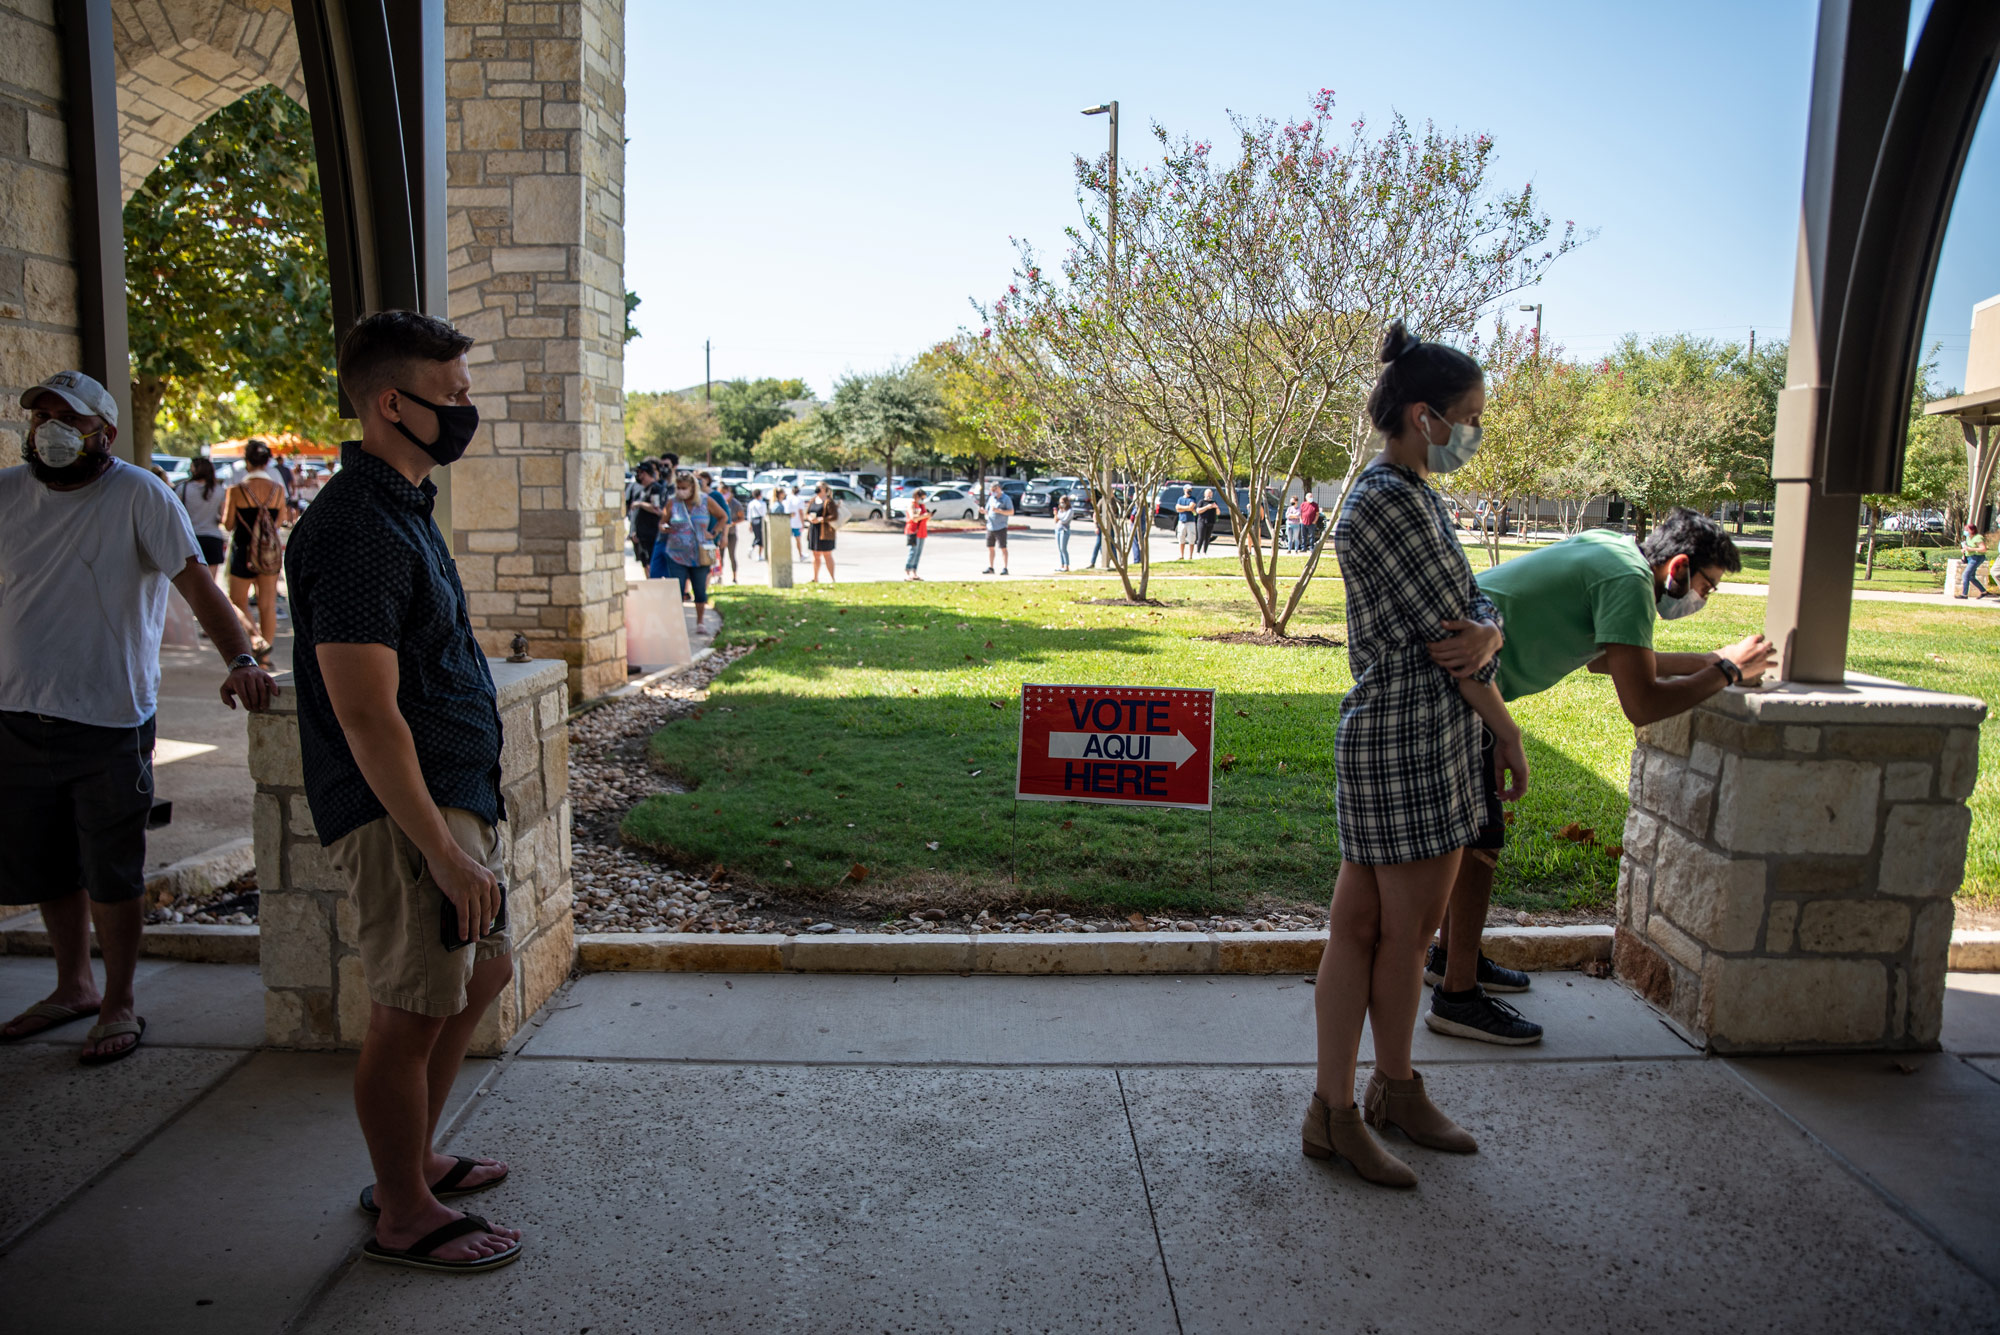 Voters wait in line at a polling location on October 13 in Austin, Texas.